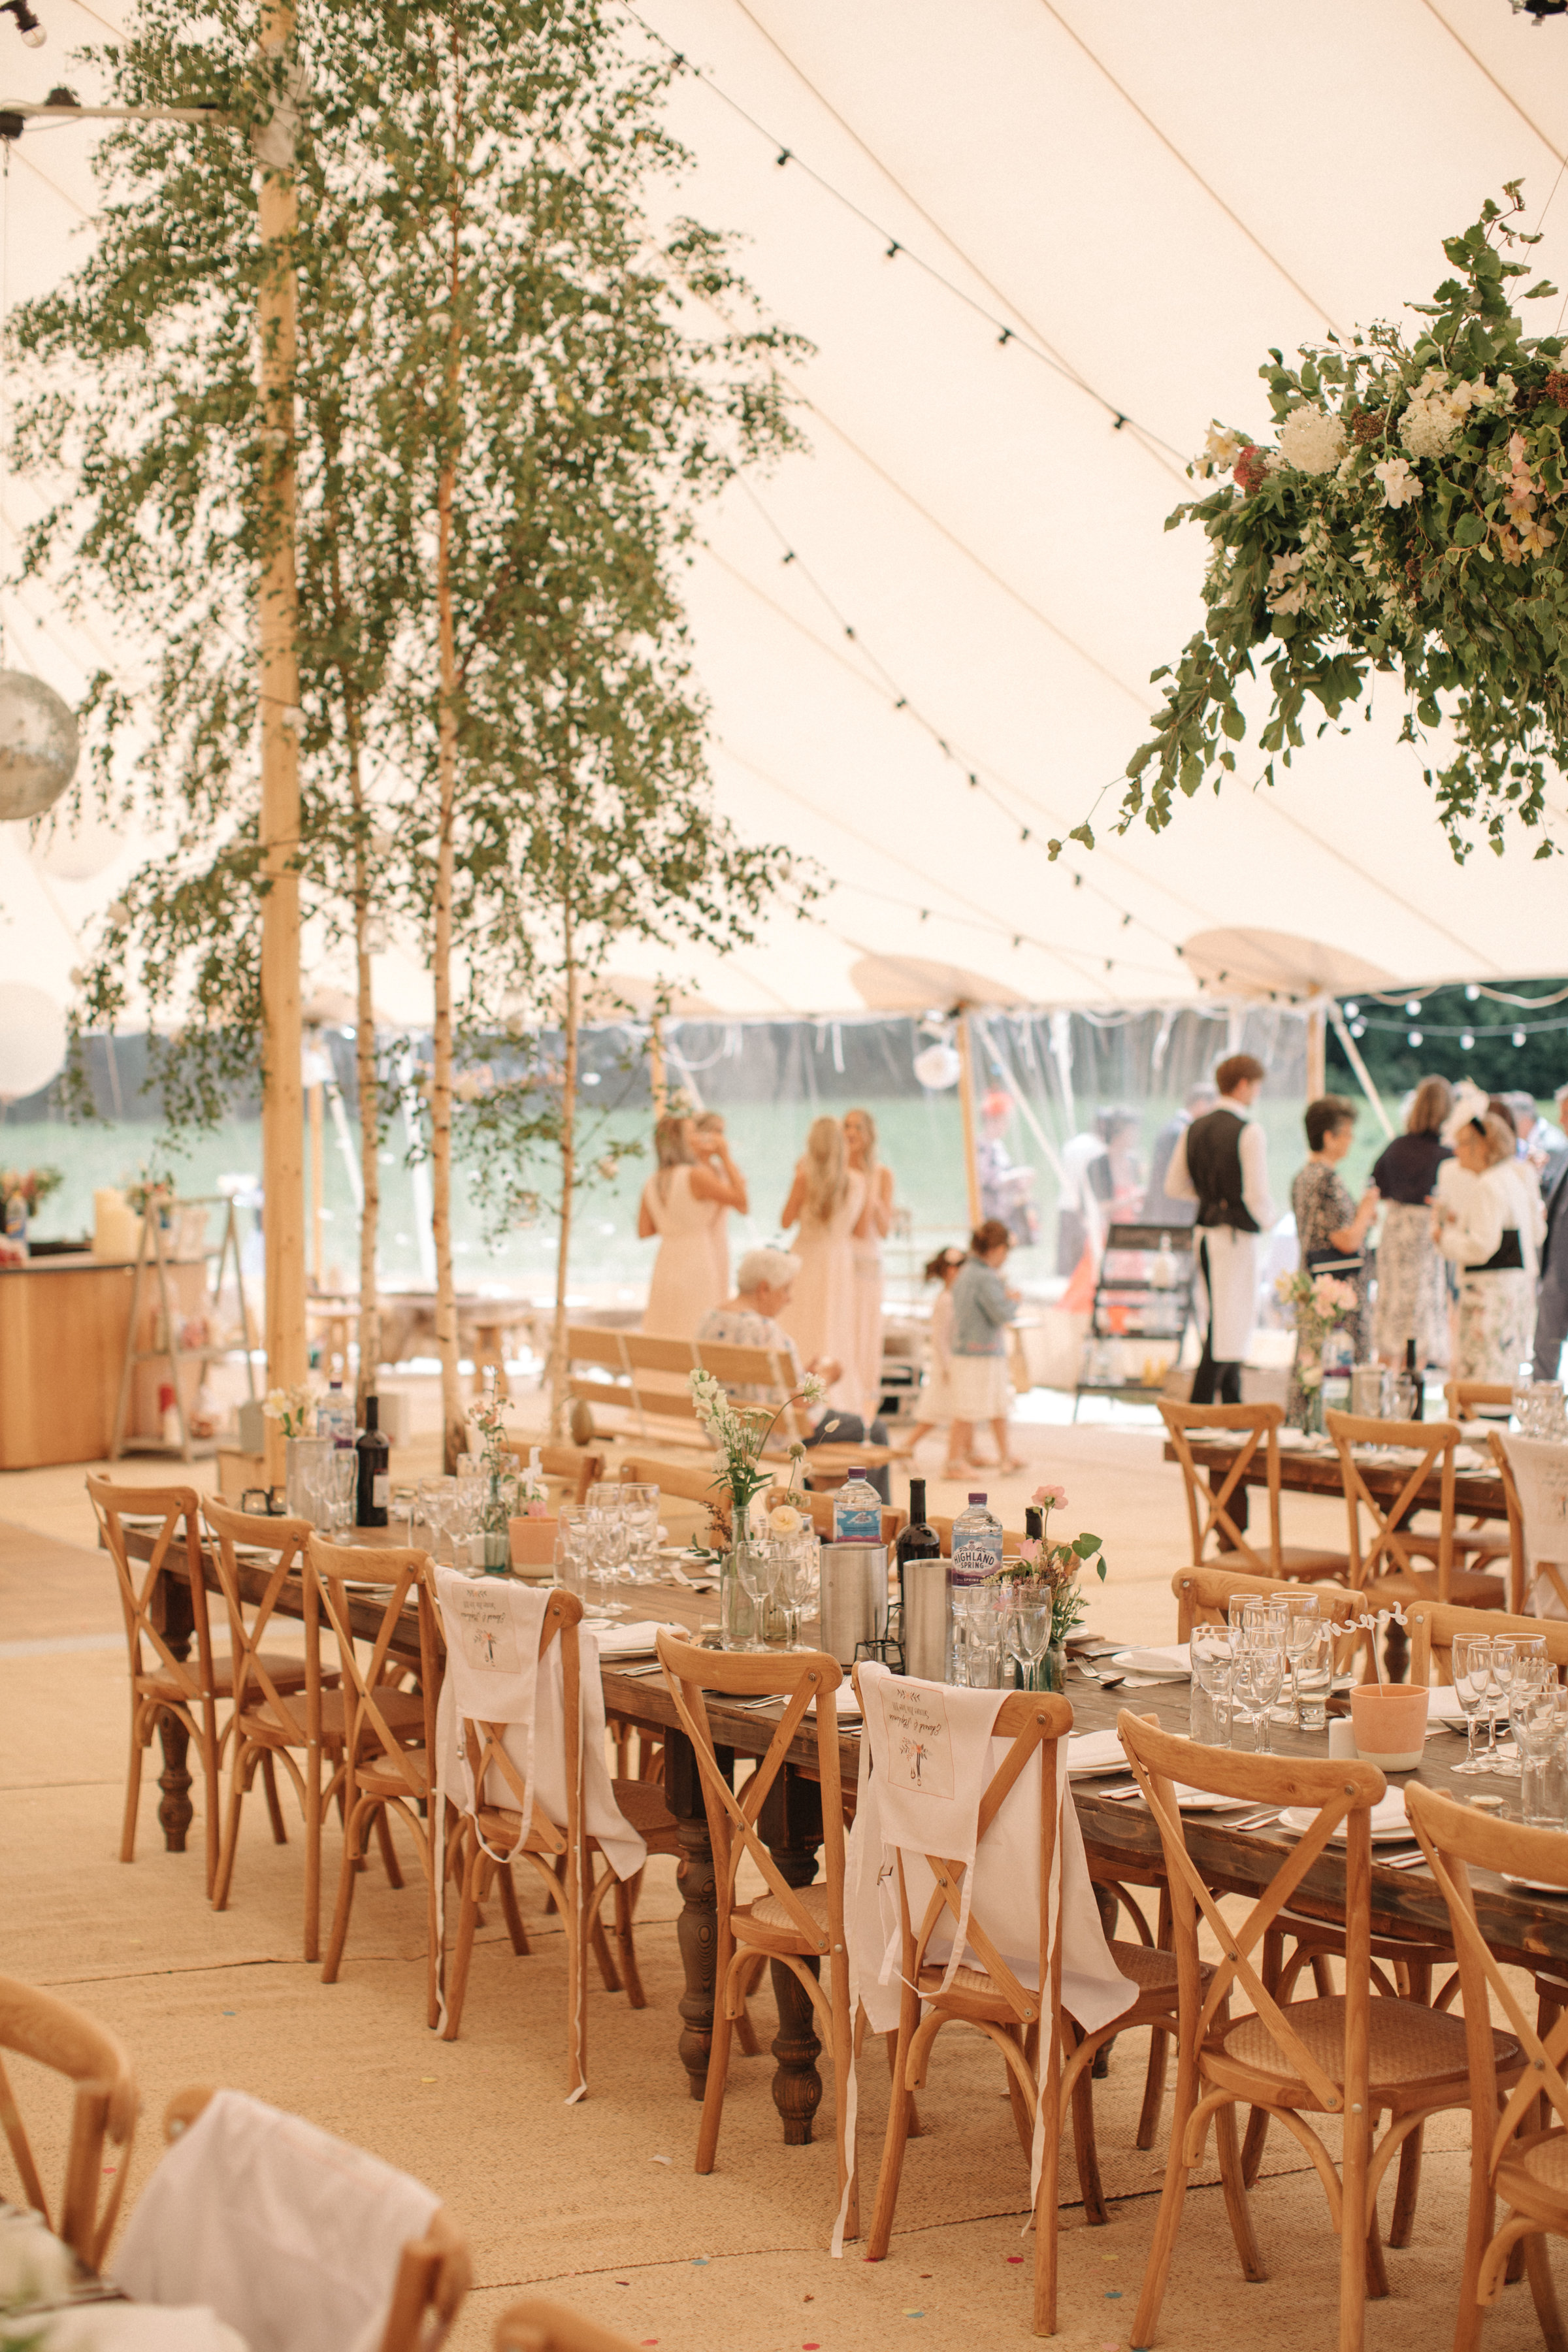 Steph & Ed's PapaKåta Sperry Tent wedding at home in Nottingham captured by M & J Photography: Cross Back Chair